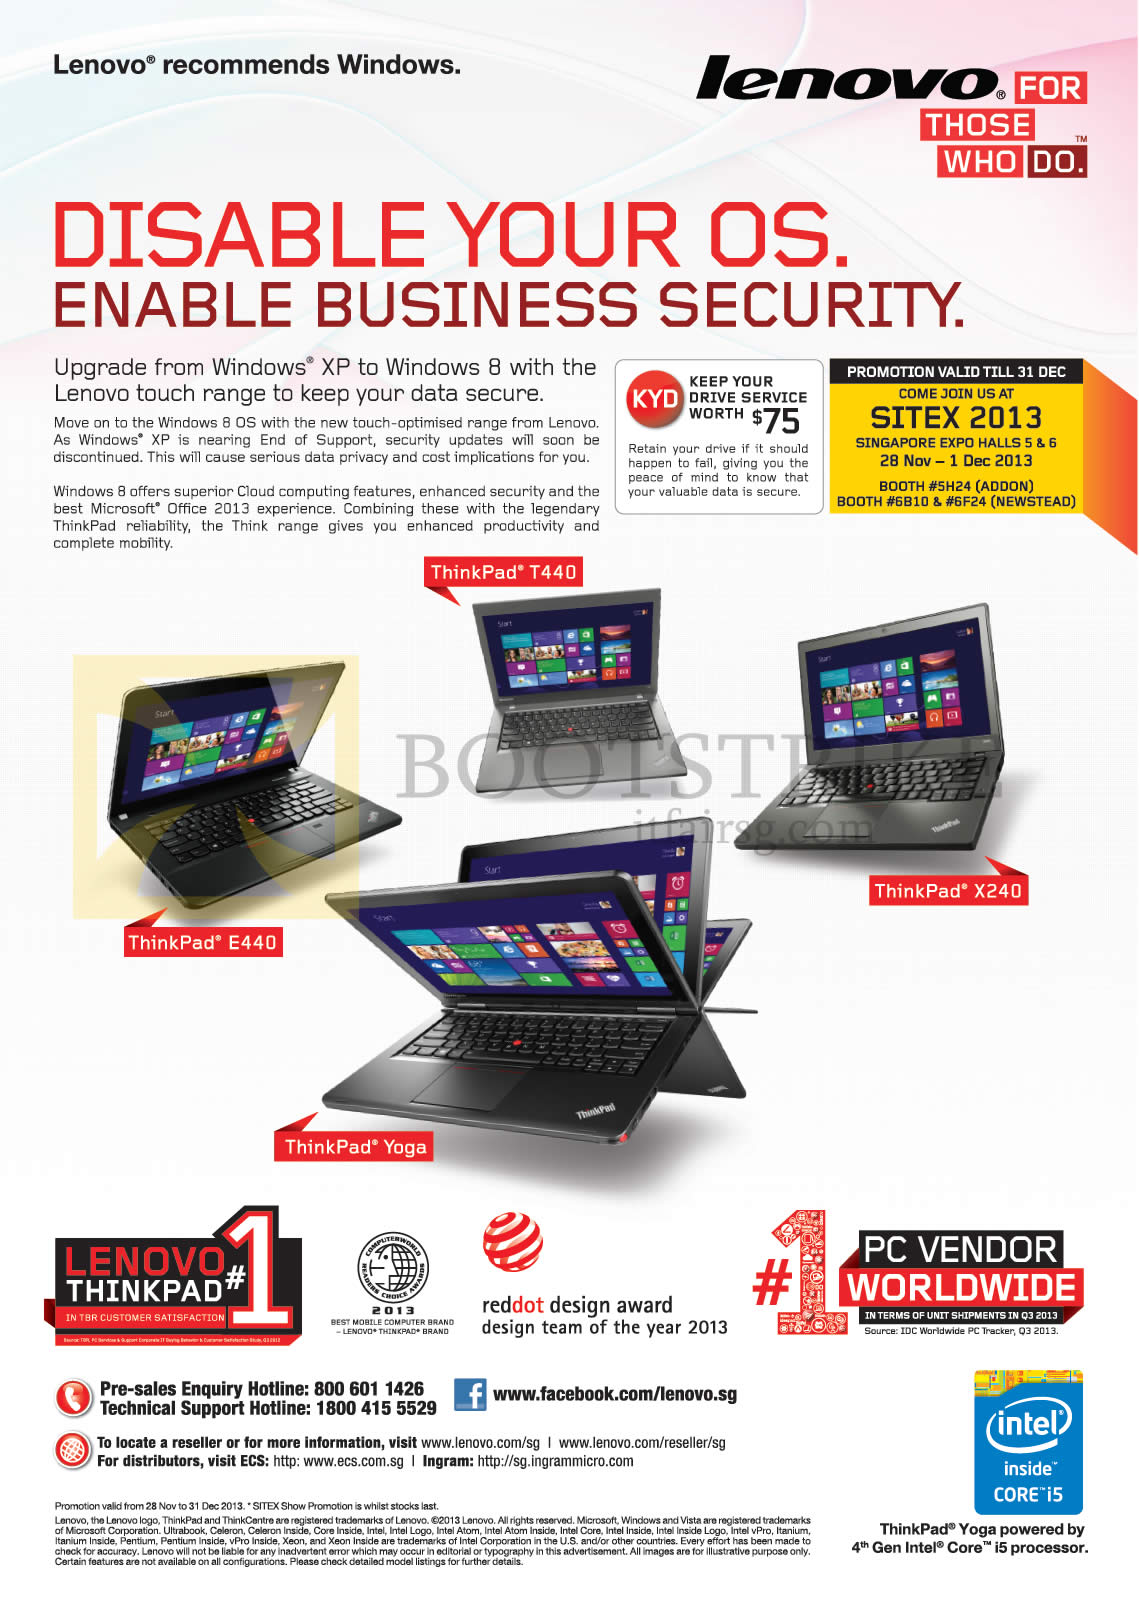 SITEX 2013 price list image brochure of Lenovo Windows 8 Features, Notebooks Thinkpad E440, T440, X240, Yoga